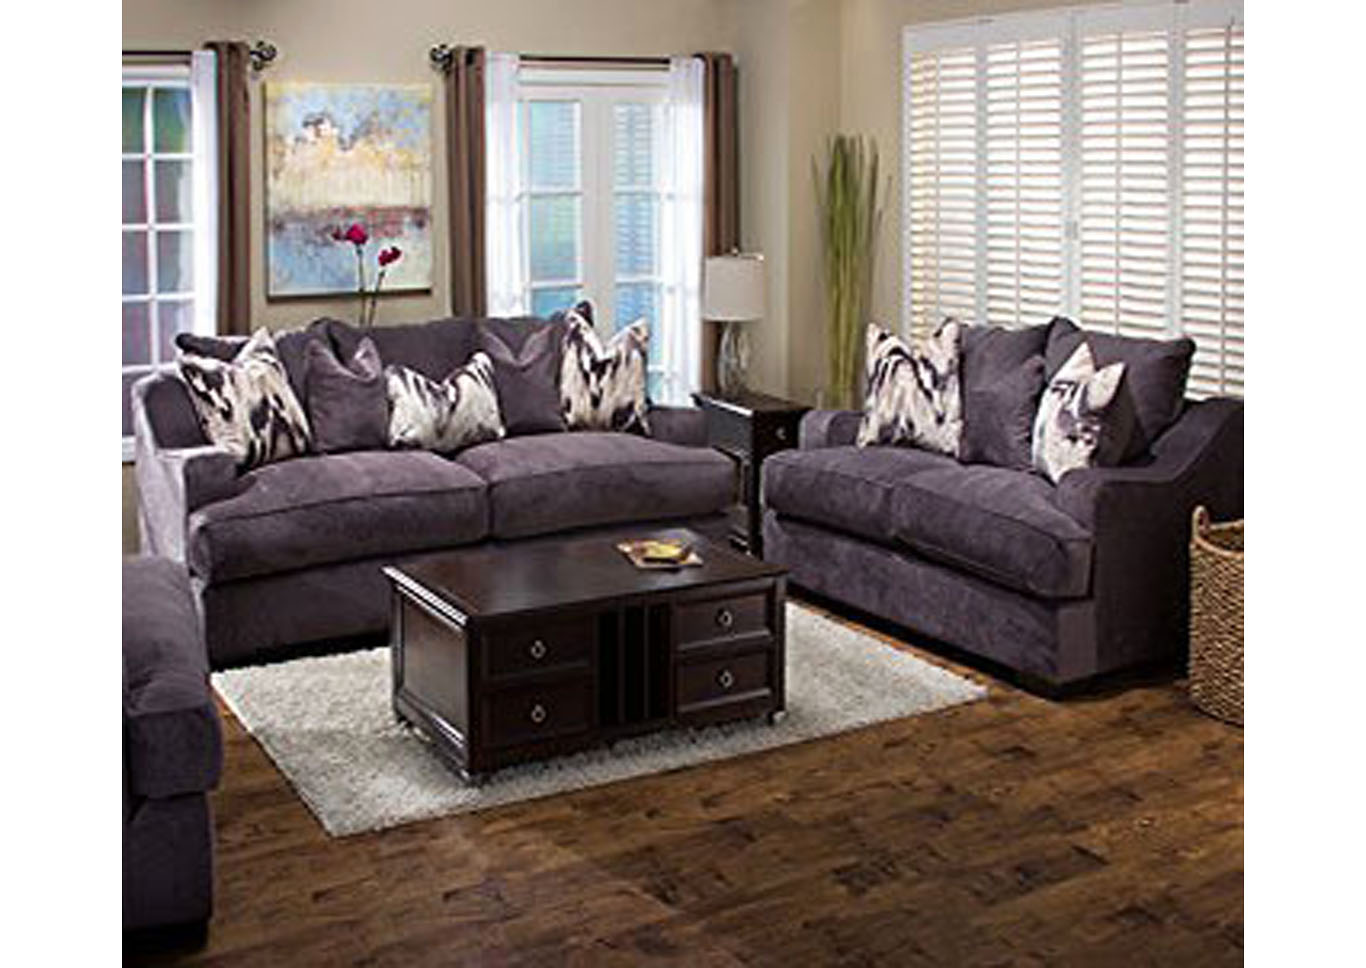 Spartan Sofa and Loveseat Set,Instore